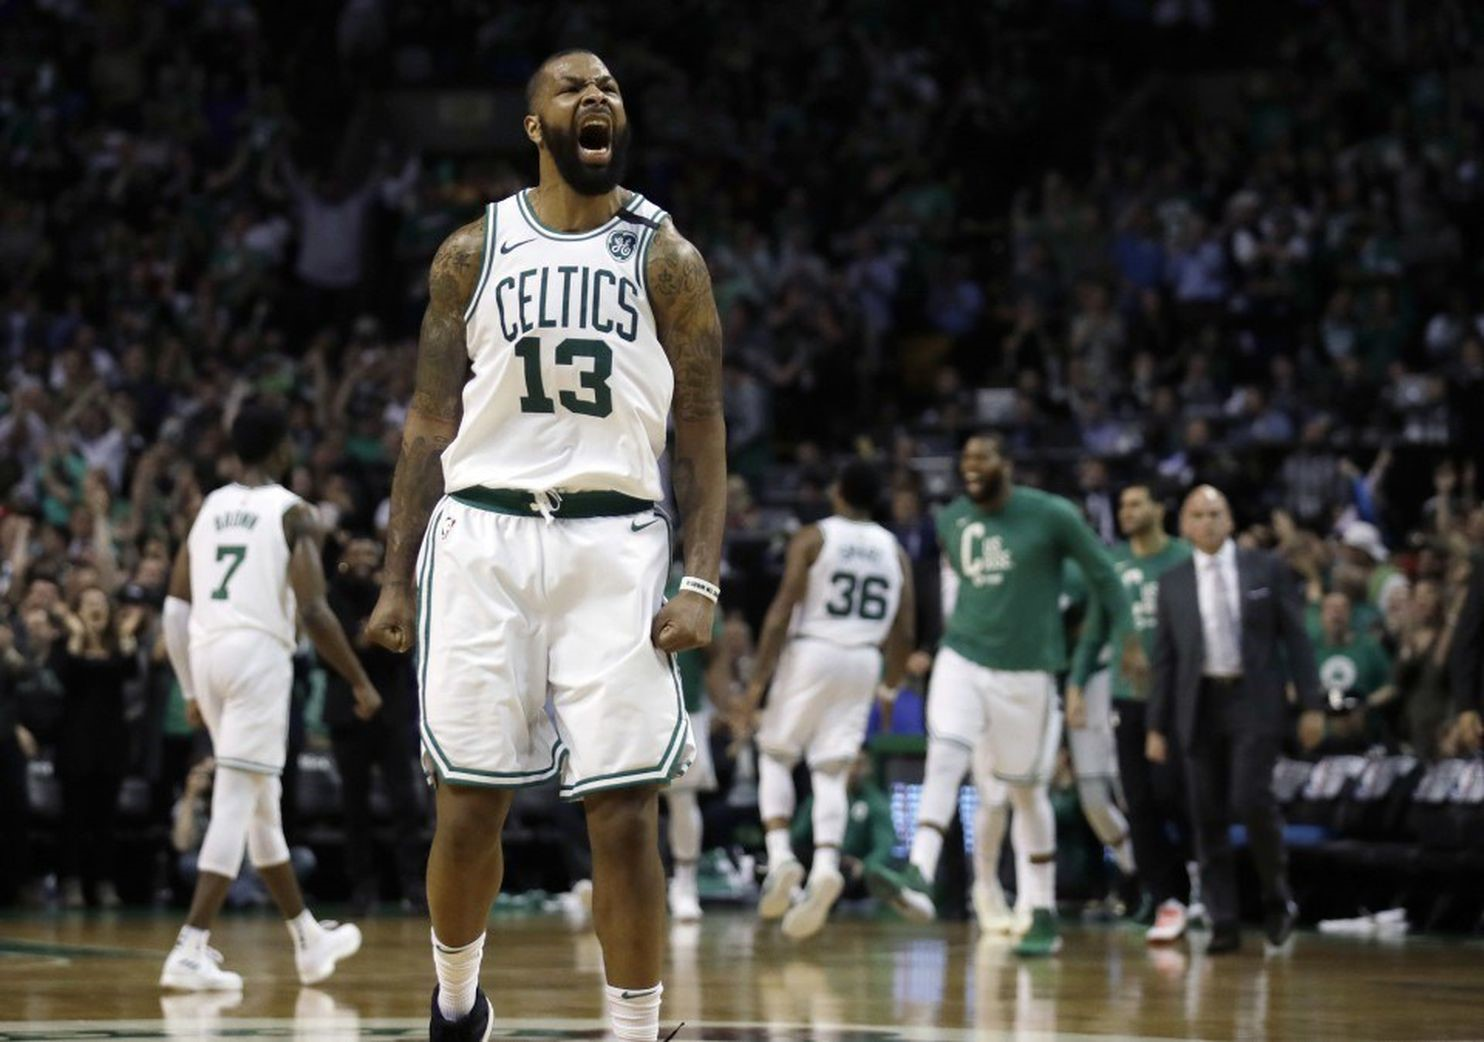 Day 29 Of The NBA Playoffs: Boston's Balance Beats Bron's Brilliance